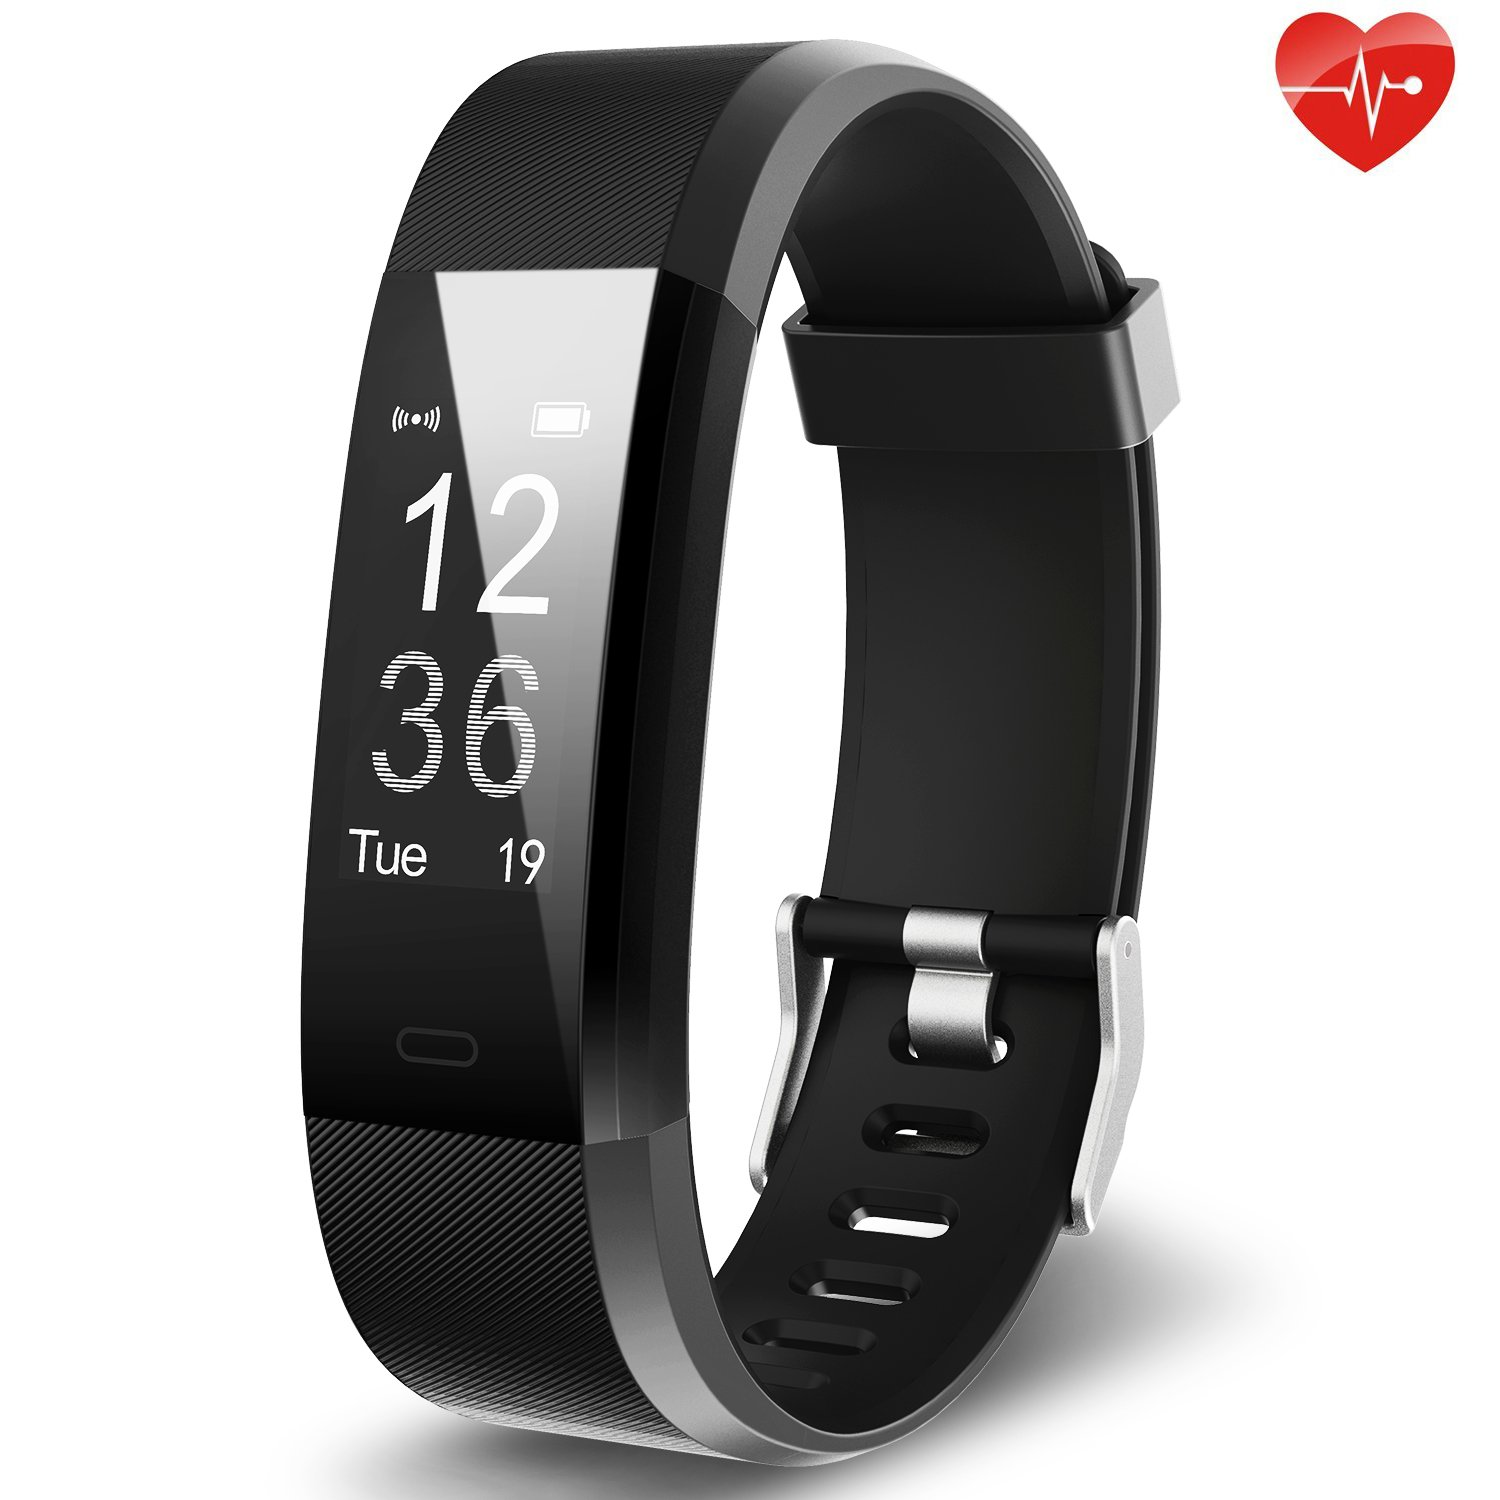 HolyHigh YG3 Plus Fitness Tracker Best Sports Watches For Men to Buy Right Now in India